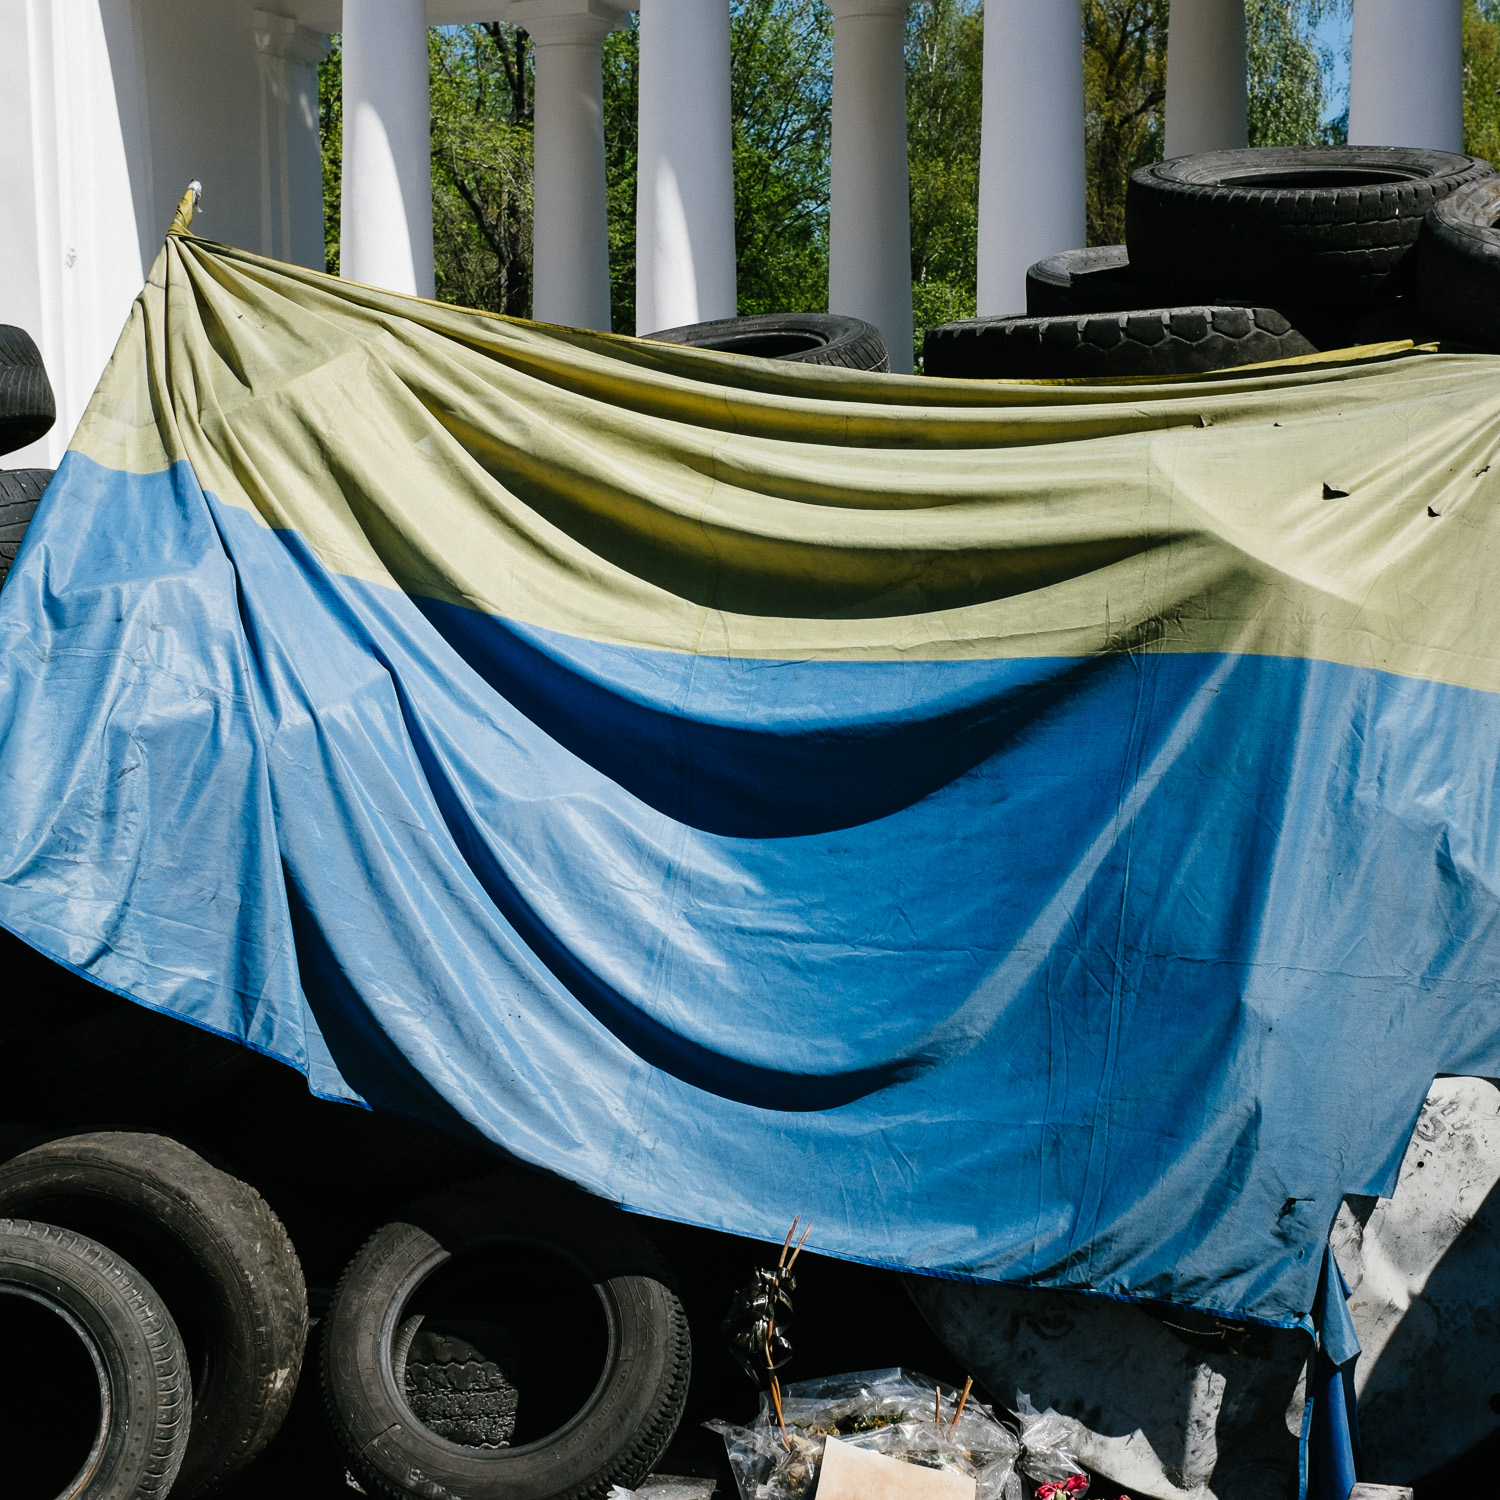 The Ukrainian flag draped over tires left over from barricades built on Hrushevskoho Street during the Euromaidan protests, near Kiev's Independence Square.